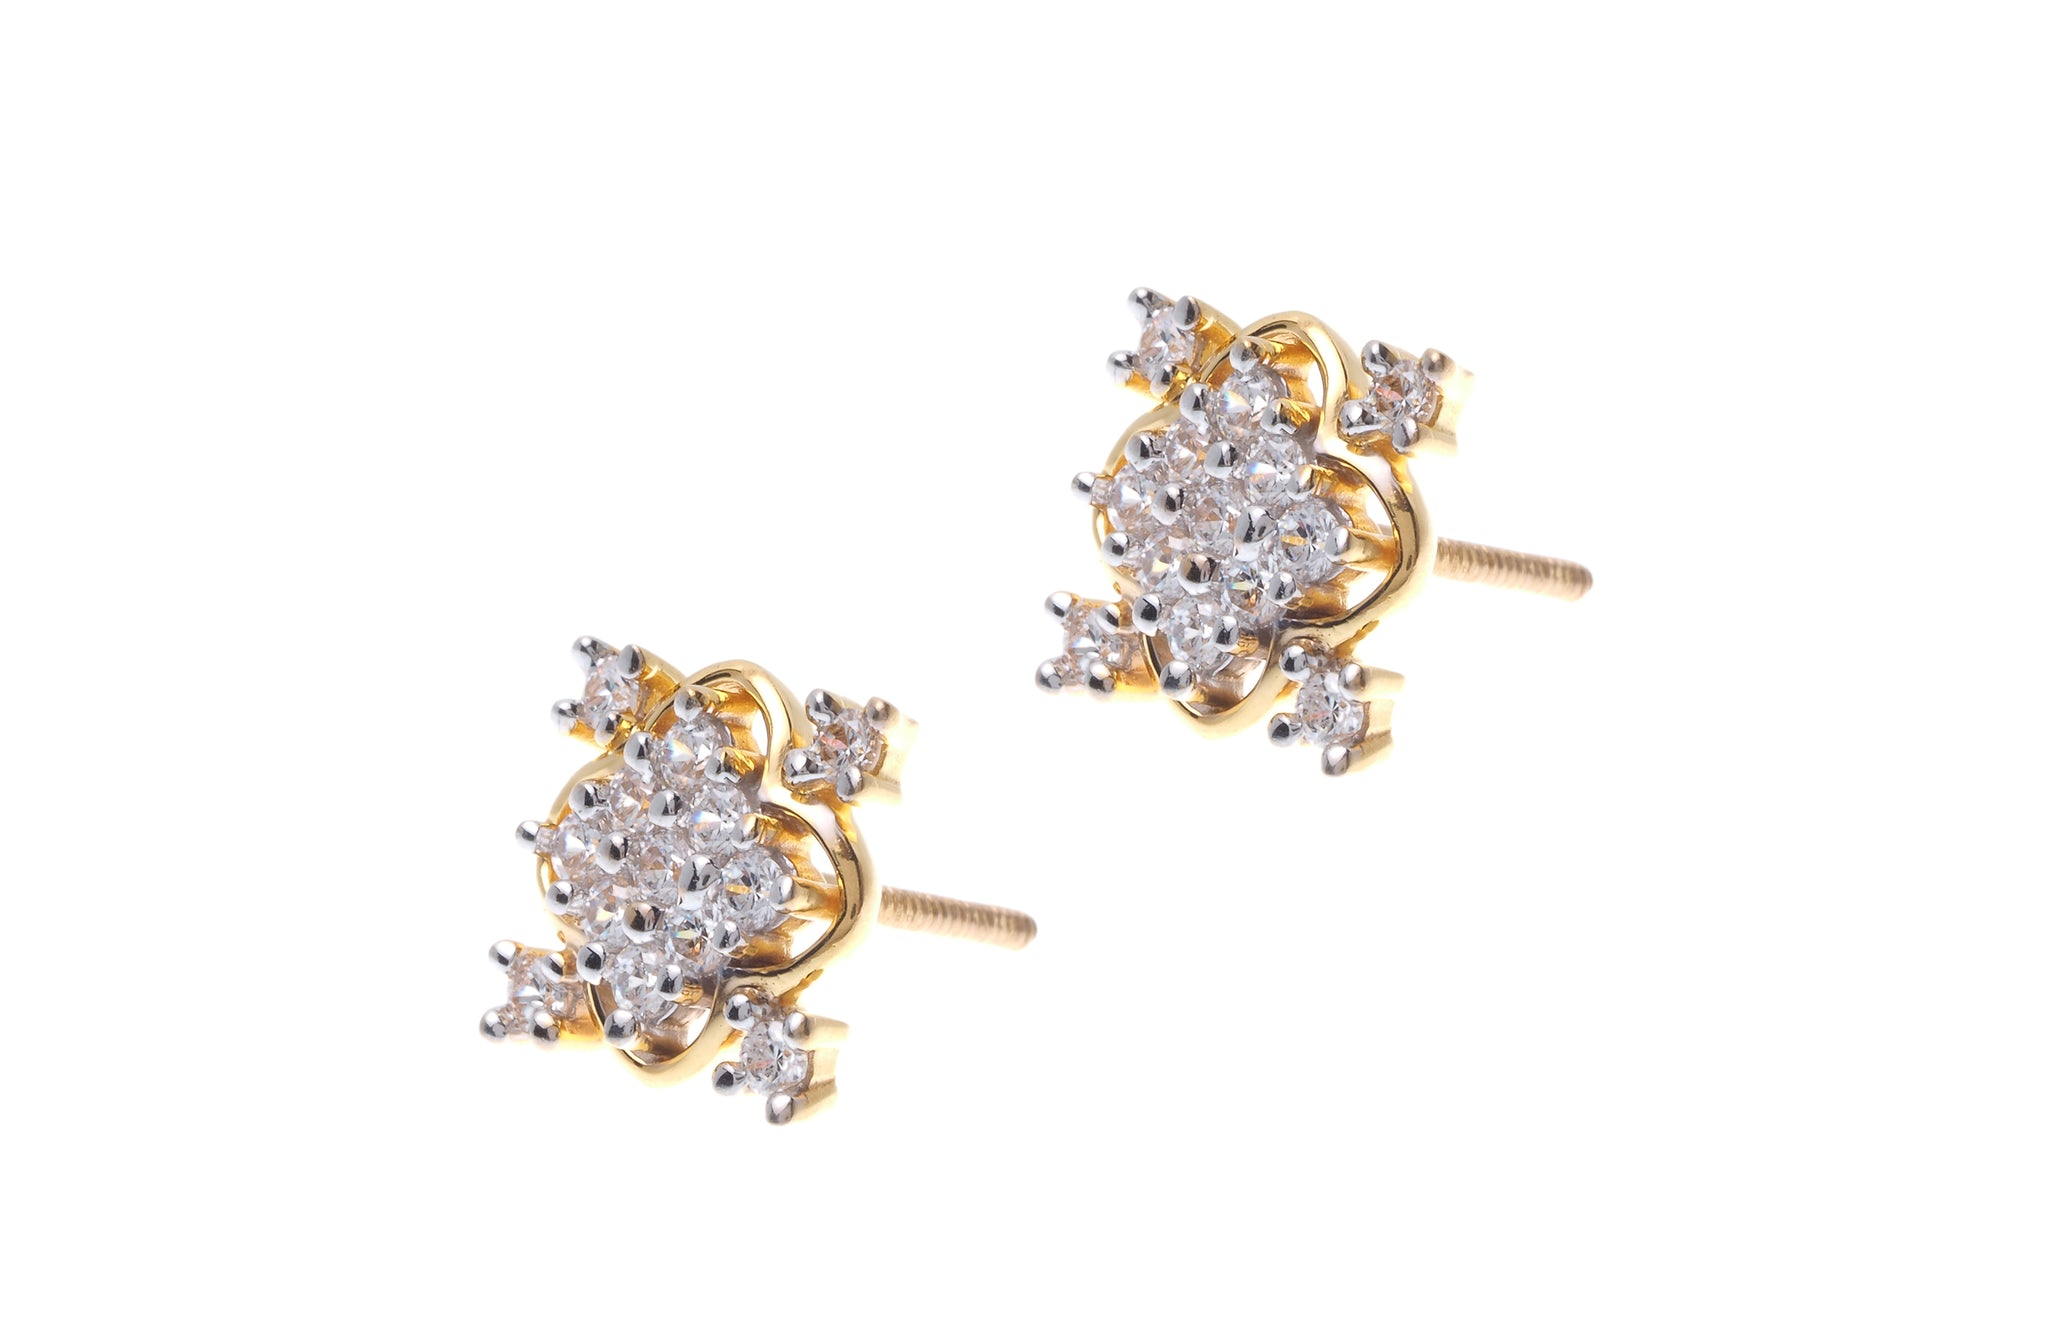 main round johnlewis stud zirconia pdp earrings at rsp ibb lewis cubic buyibb john com gold online